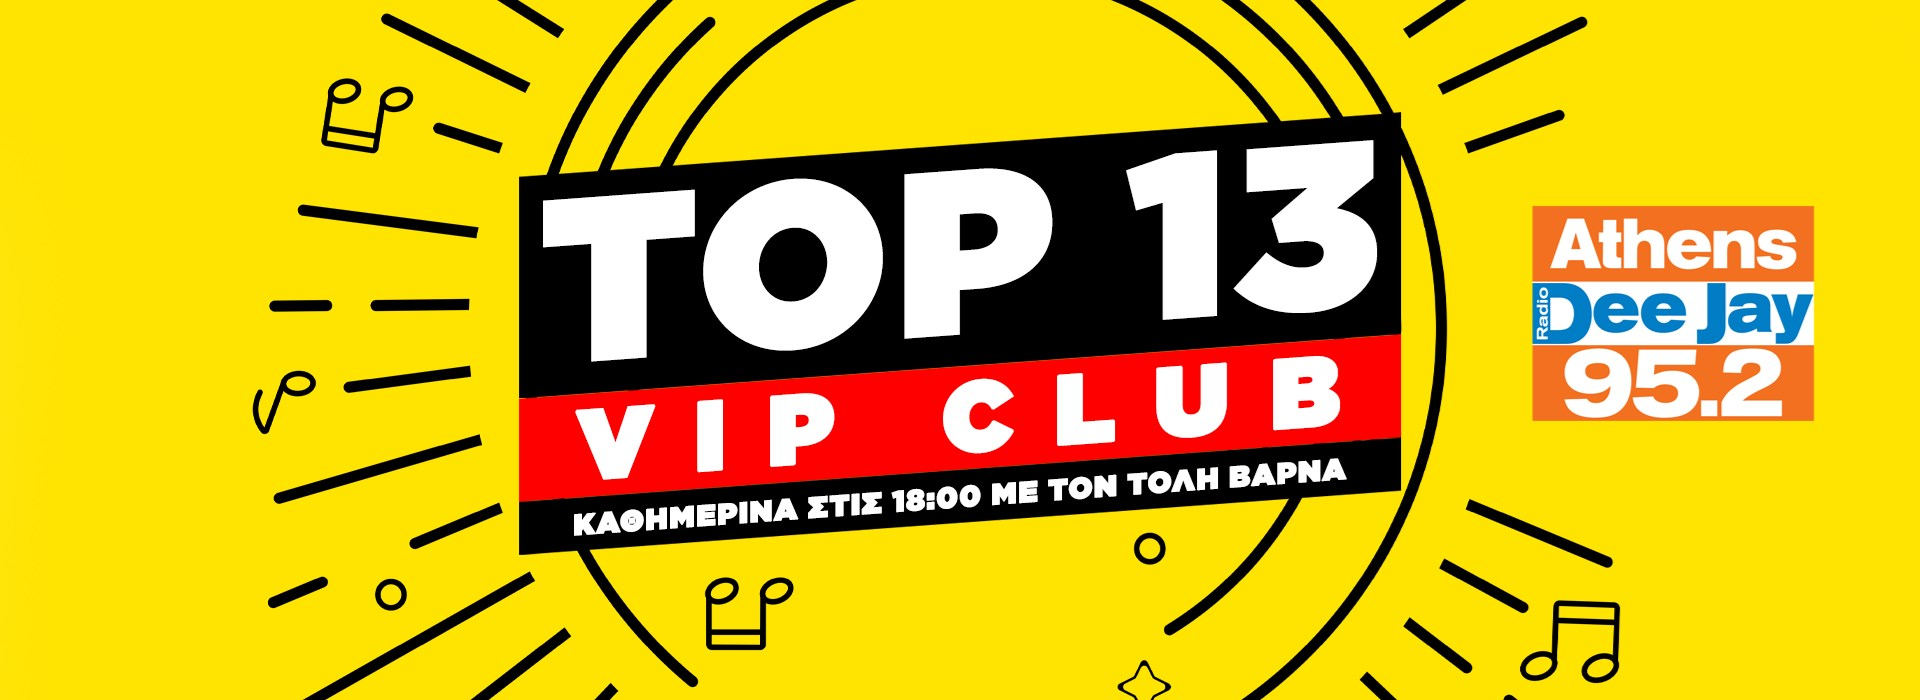 Athens DeeJay TOP 13 VIP CLUB